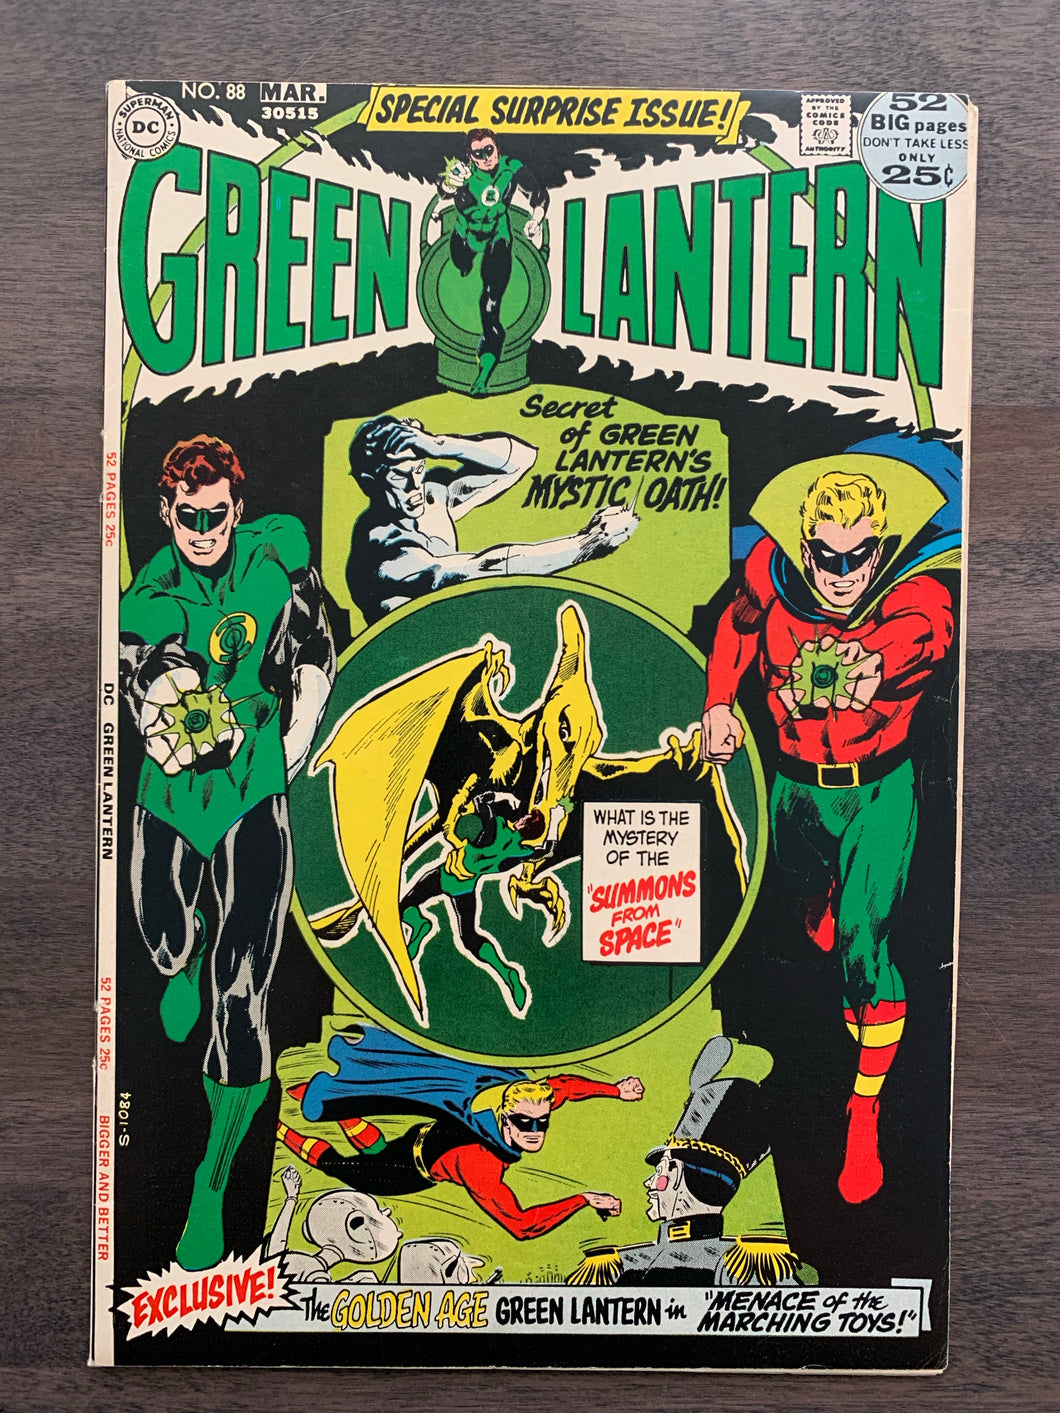 Green Lantern #88 - Unpublished Golden Age Story